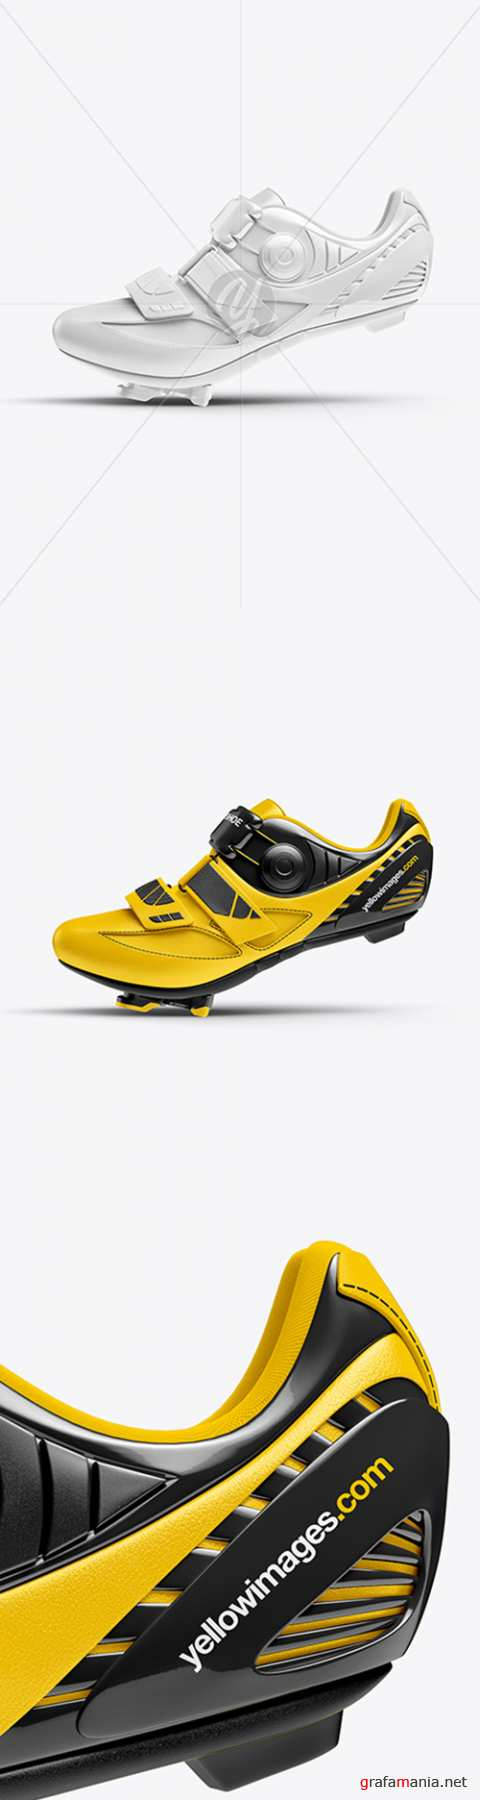 Cycling Shoe Mockup - Side View 31323